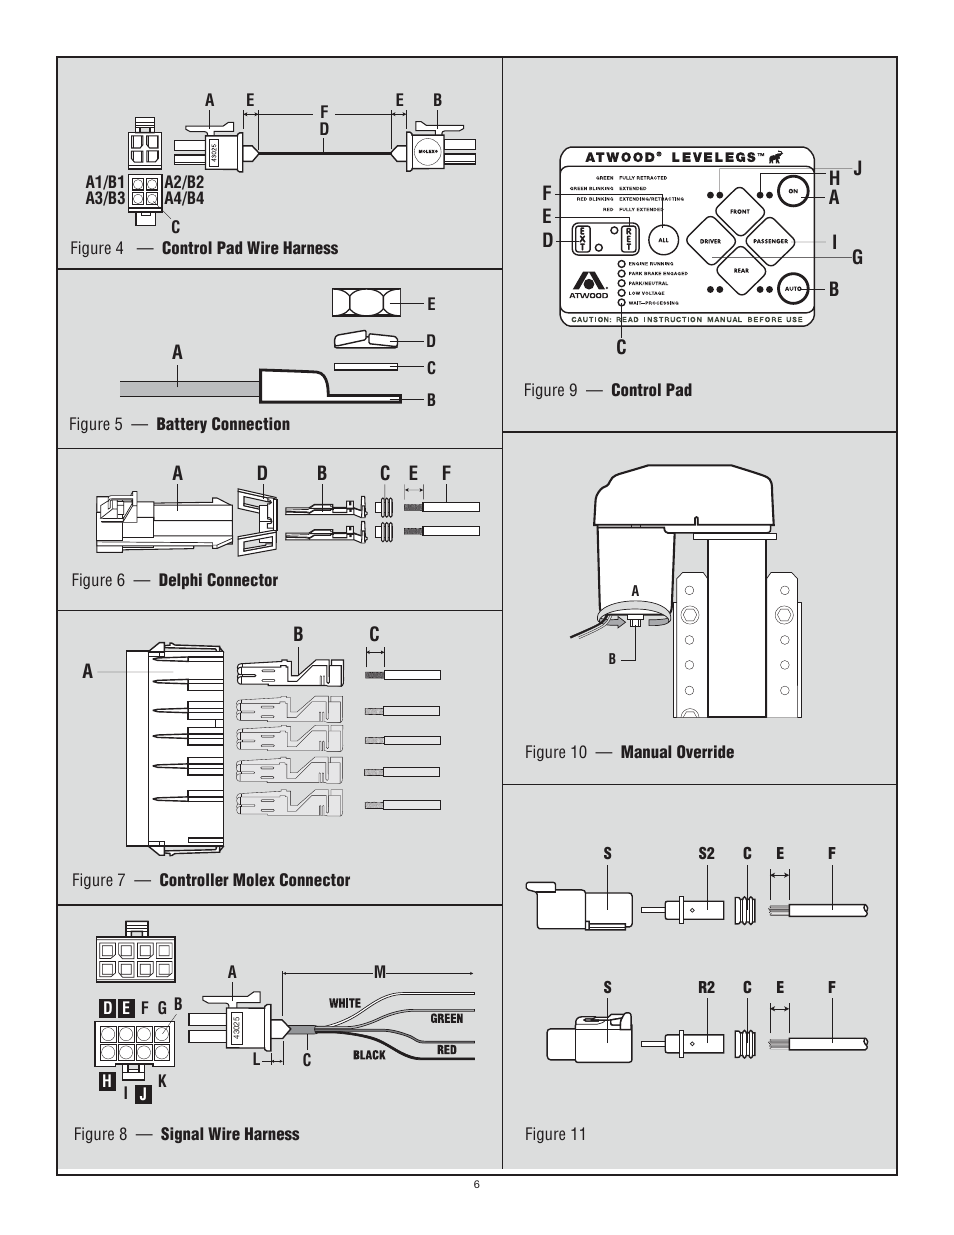 Atwood Levelegs System User Manual